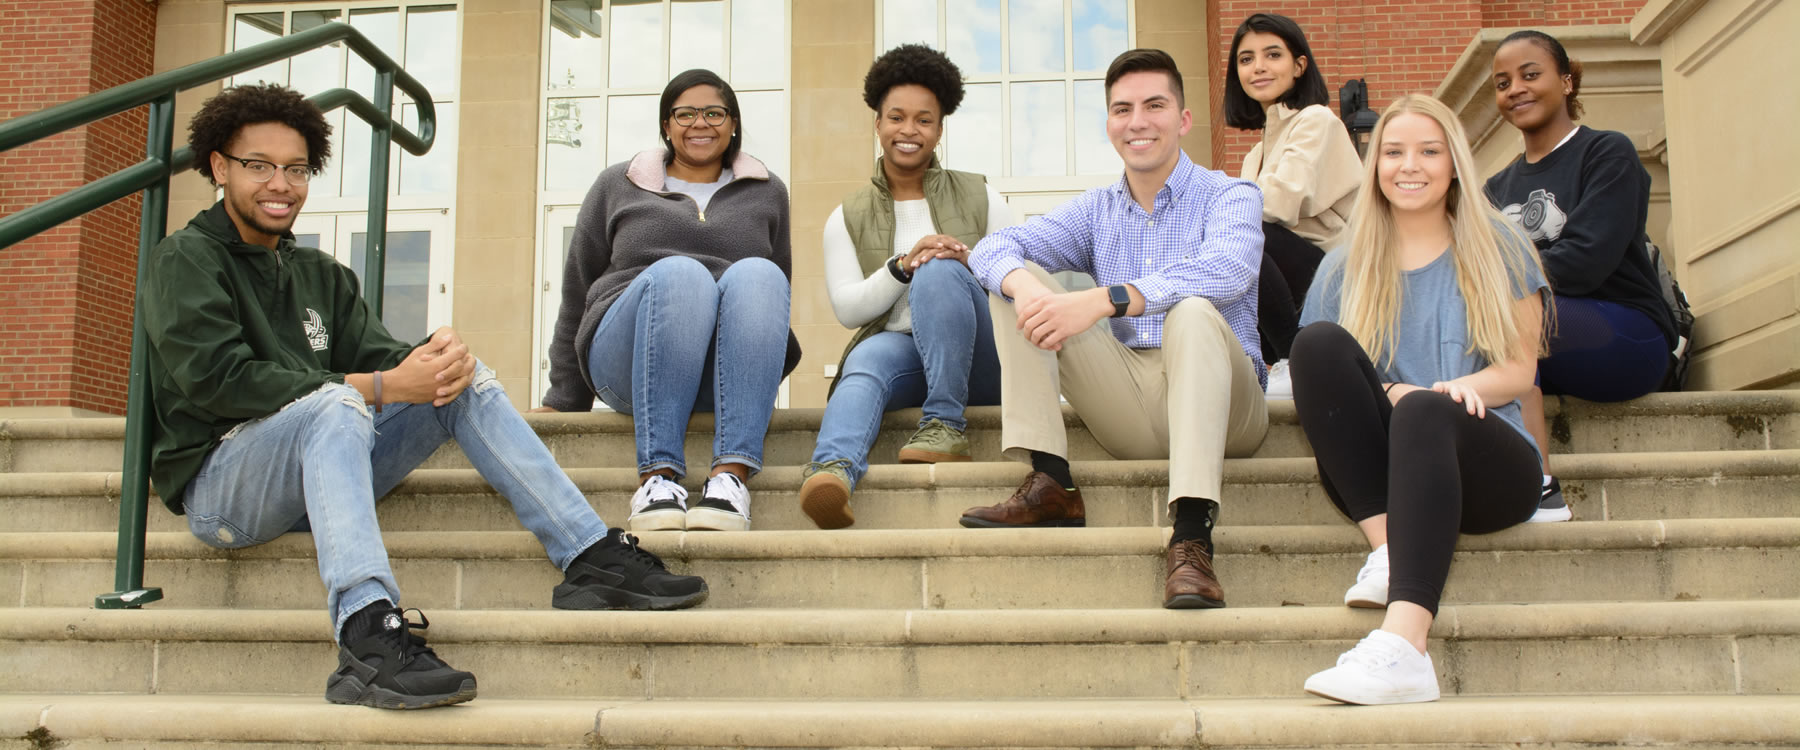 Engage ME! crowdfunding to support more minority engineering students